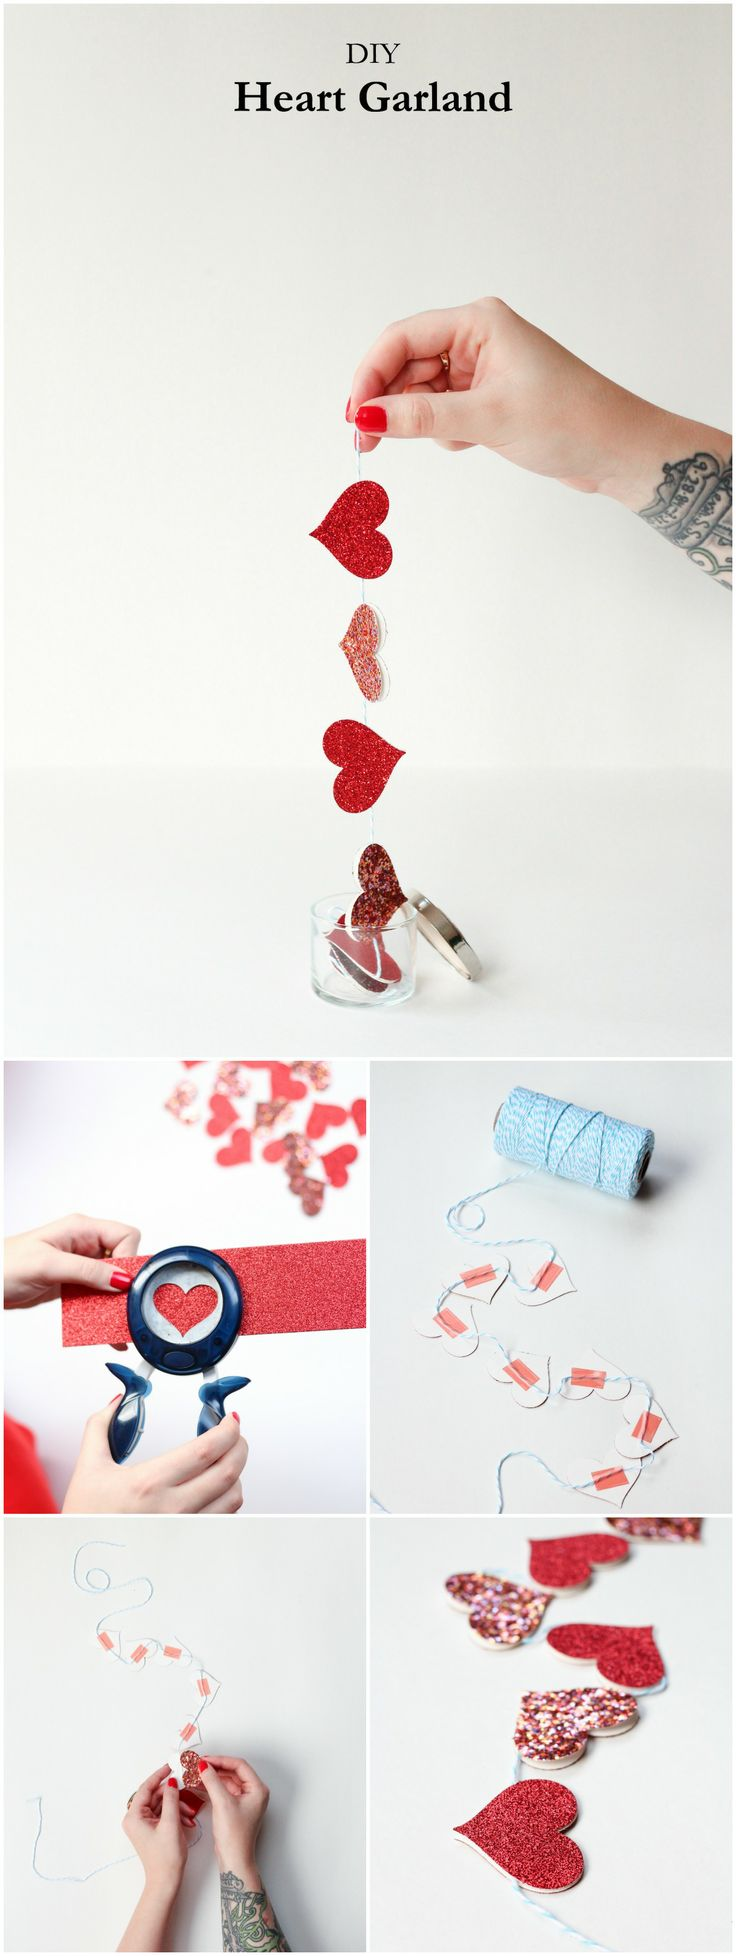 DIY How to make a simple Heart Garland.